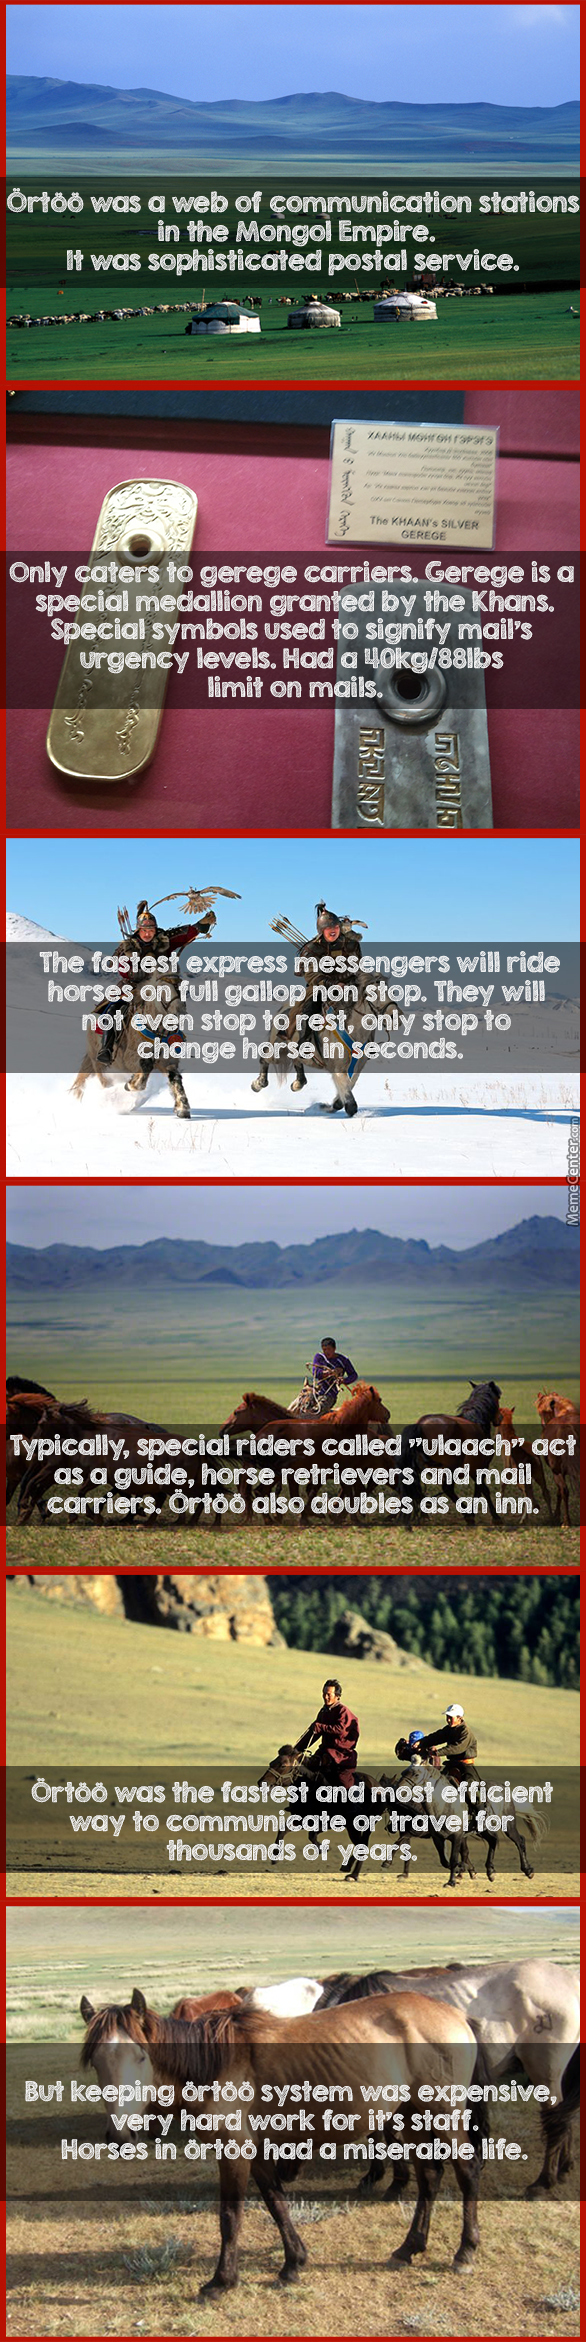 #24 Communication In The Mongol Empire